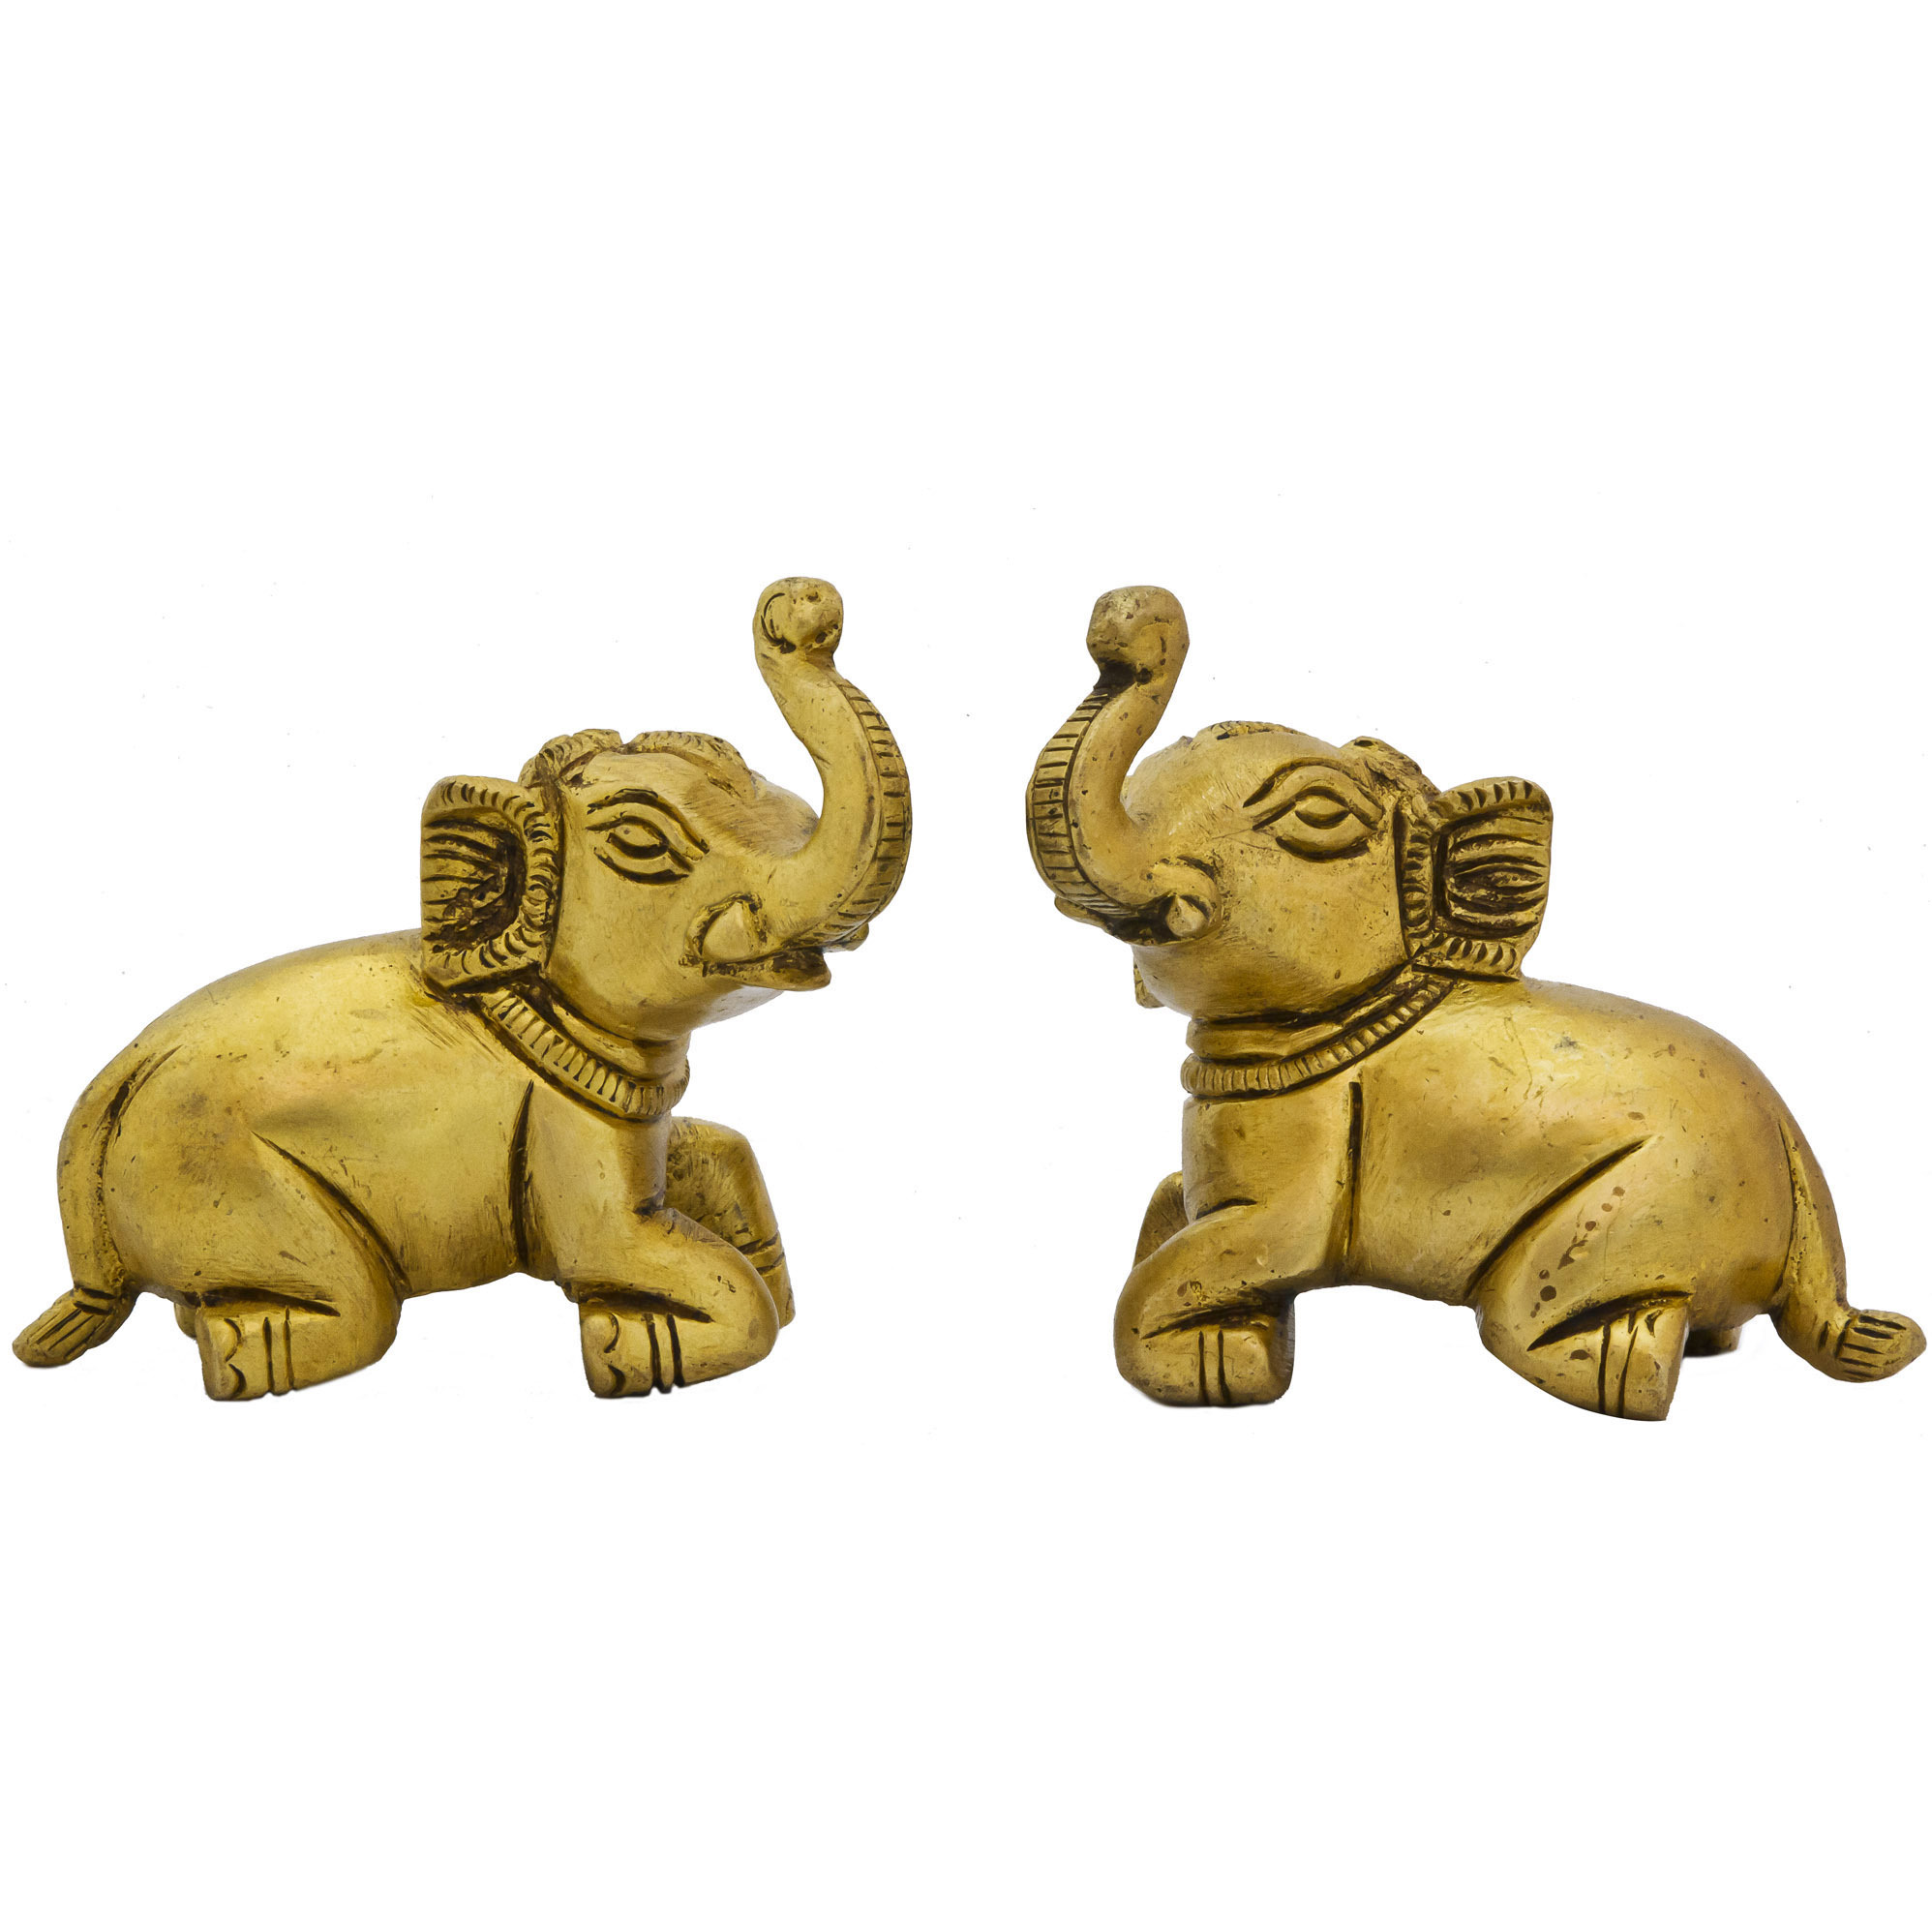 Pair of Elephants